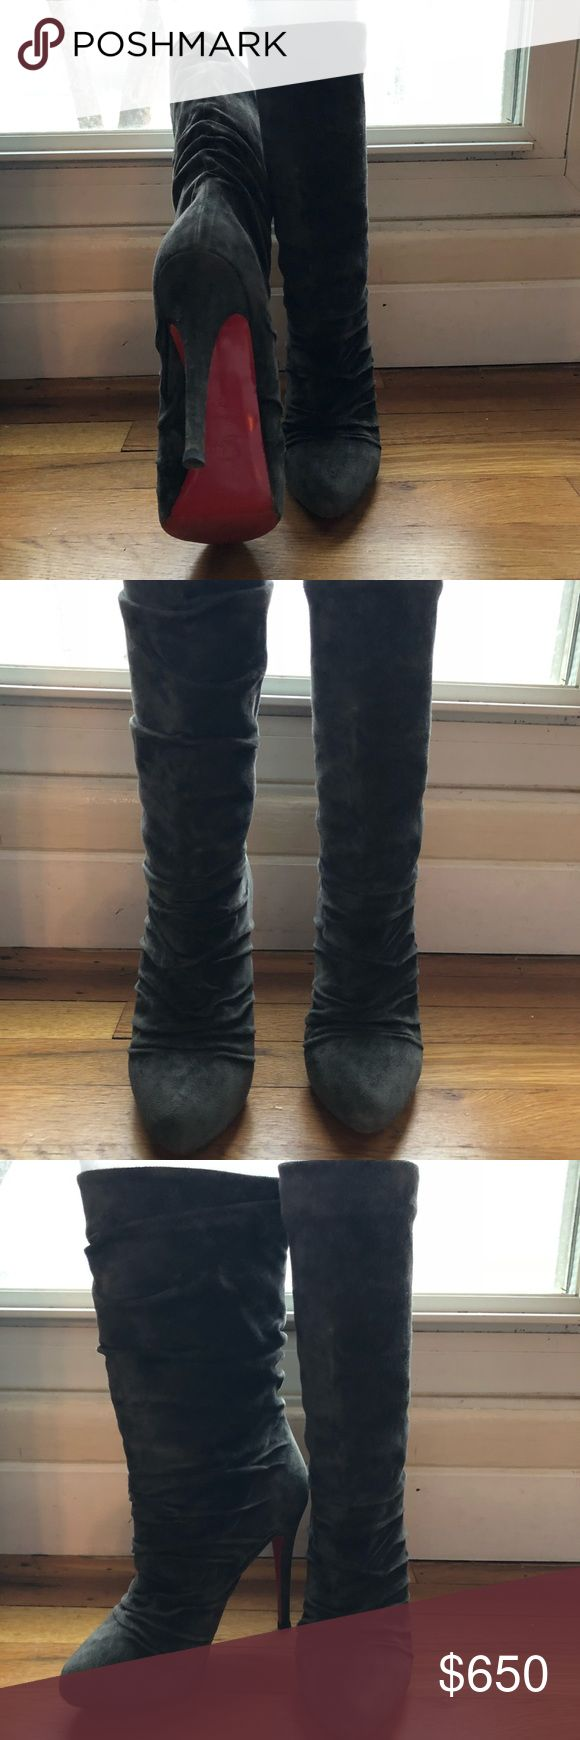 """Christian Louboutin African Gray Suede Boots Size 38 (8) Christian Louboutin African Gray suede boots worn maybe 4x.  Bottom sole protector placed by a Christian Louboutin """"only"""" vendor """"Authenic Vibram"""". Christian Louboutin Shoes Heeled Boots"""